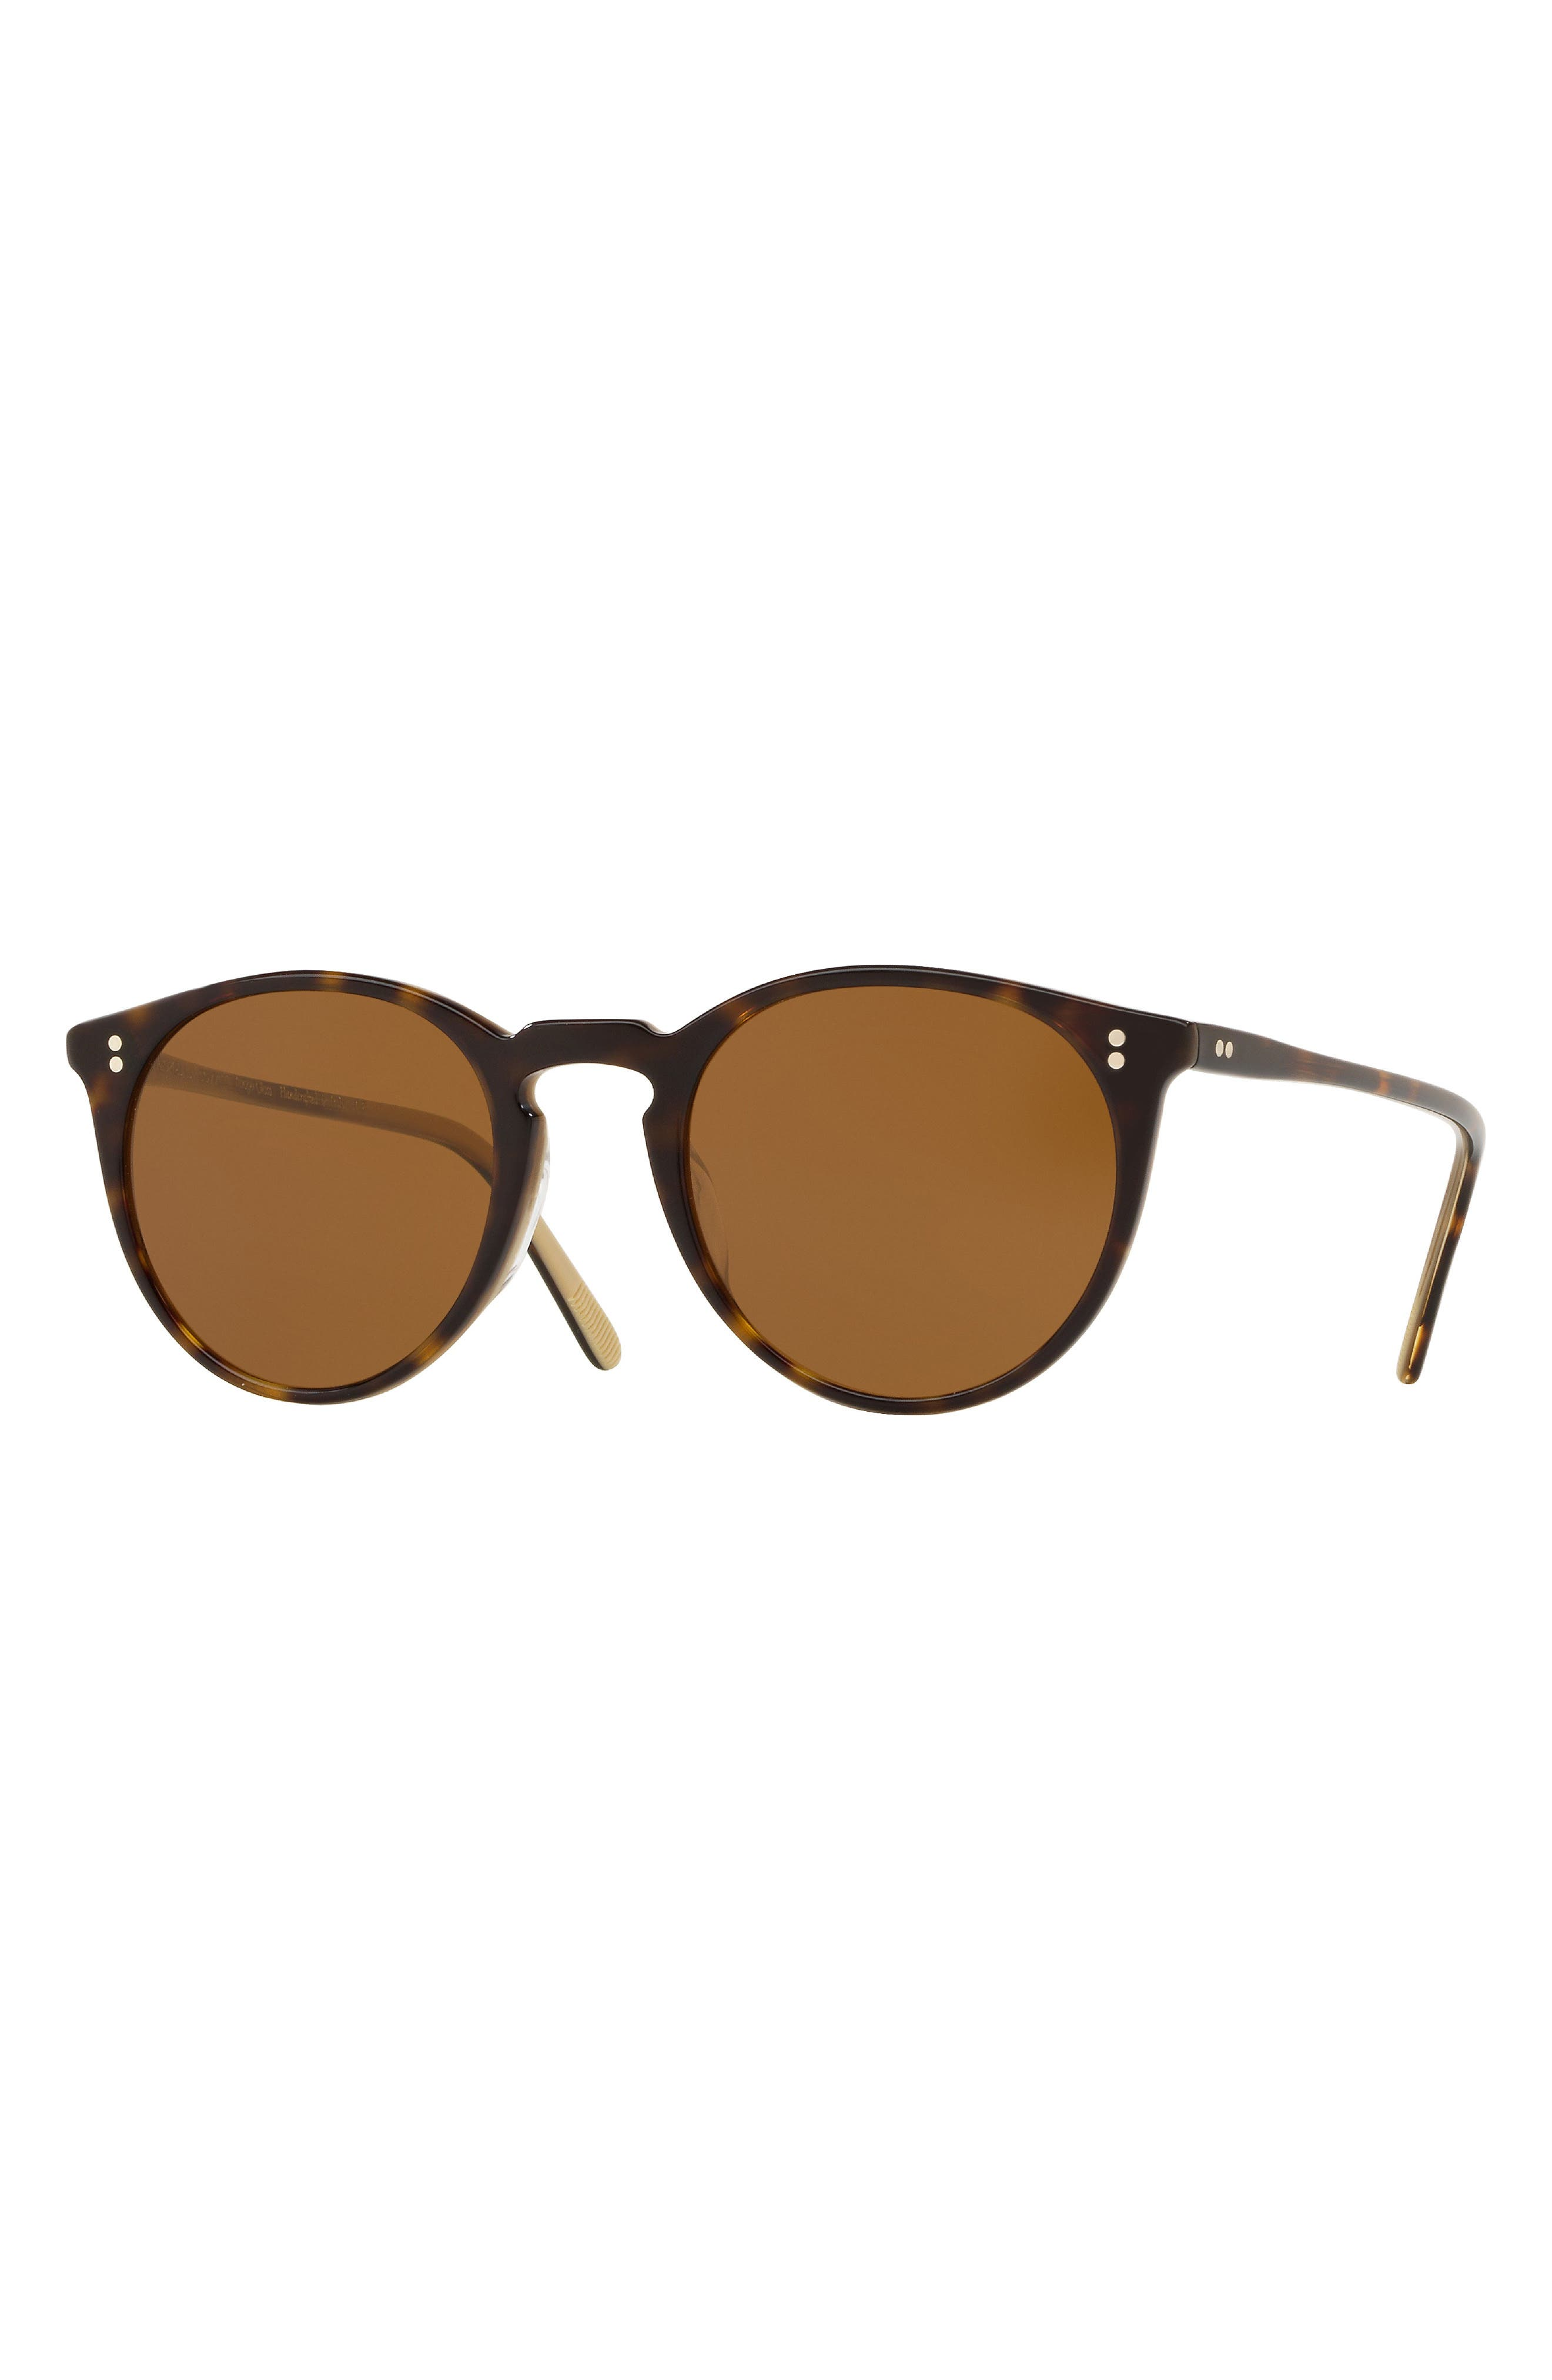 O'Malley 48mm Round Sunglasses,                             Alternate thumbnail 2, color,                             HORN BROWN